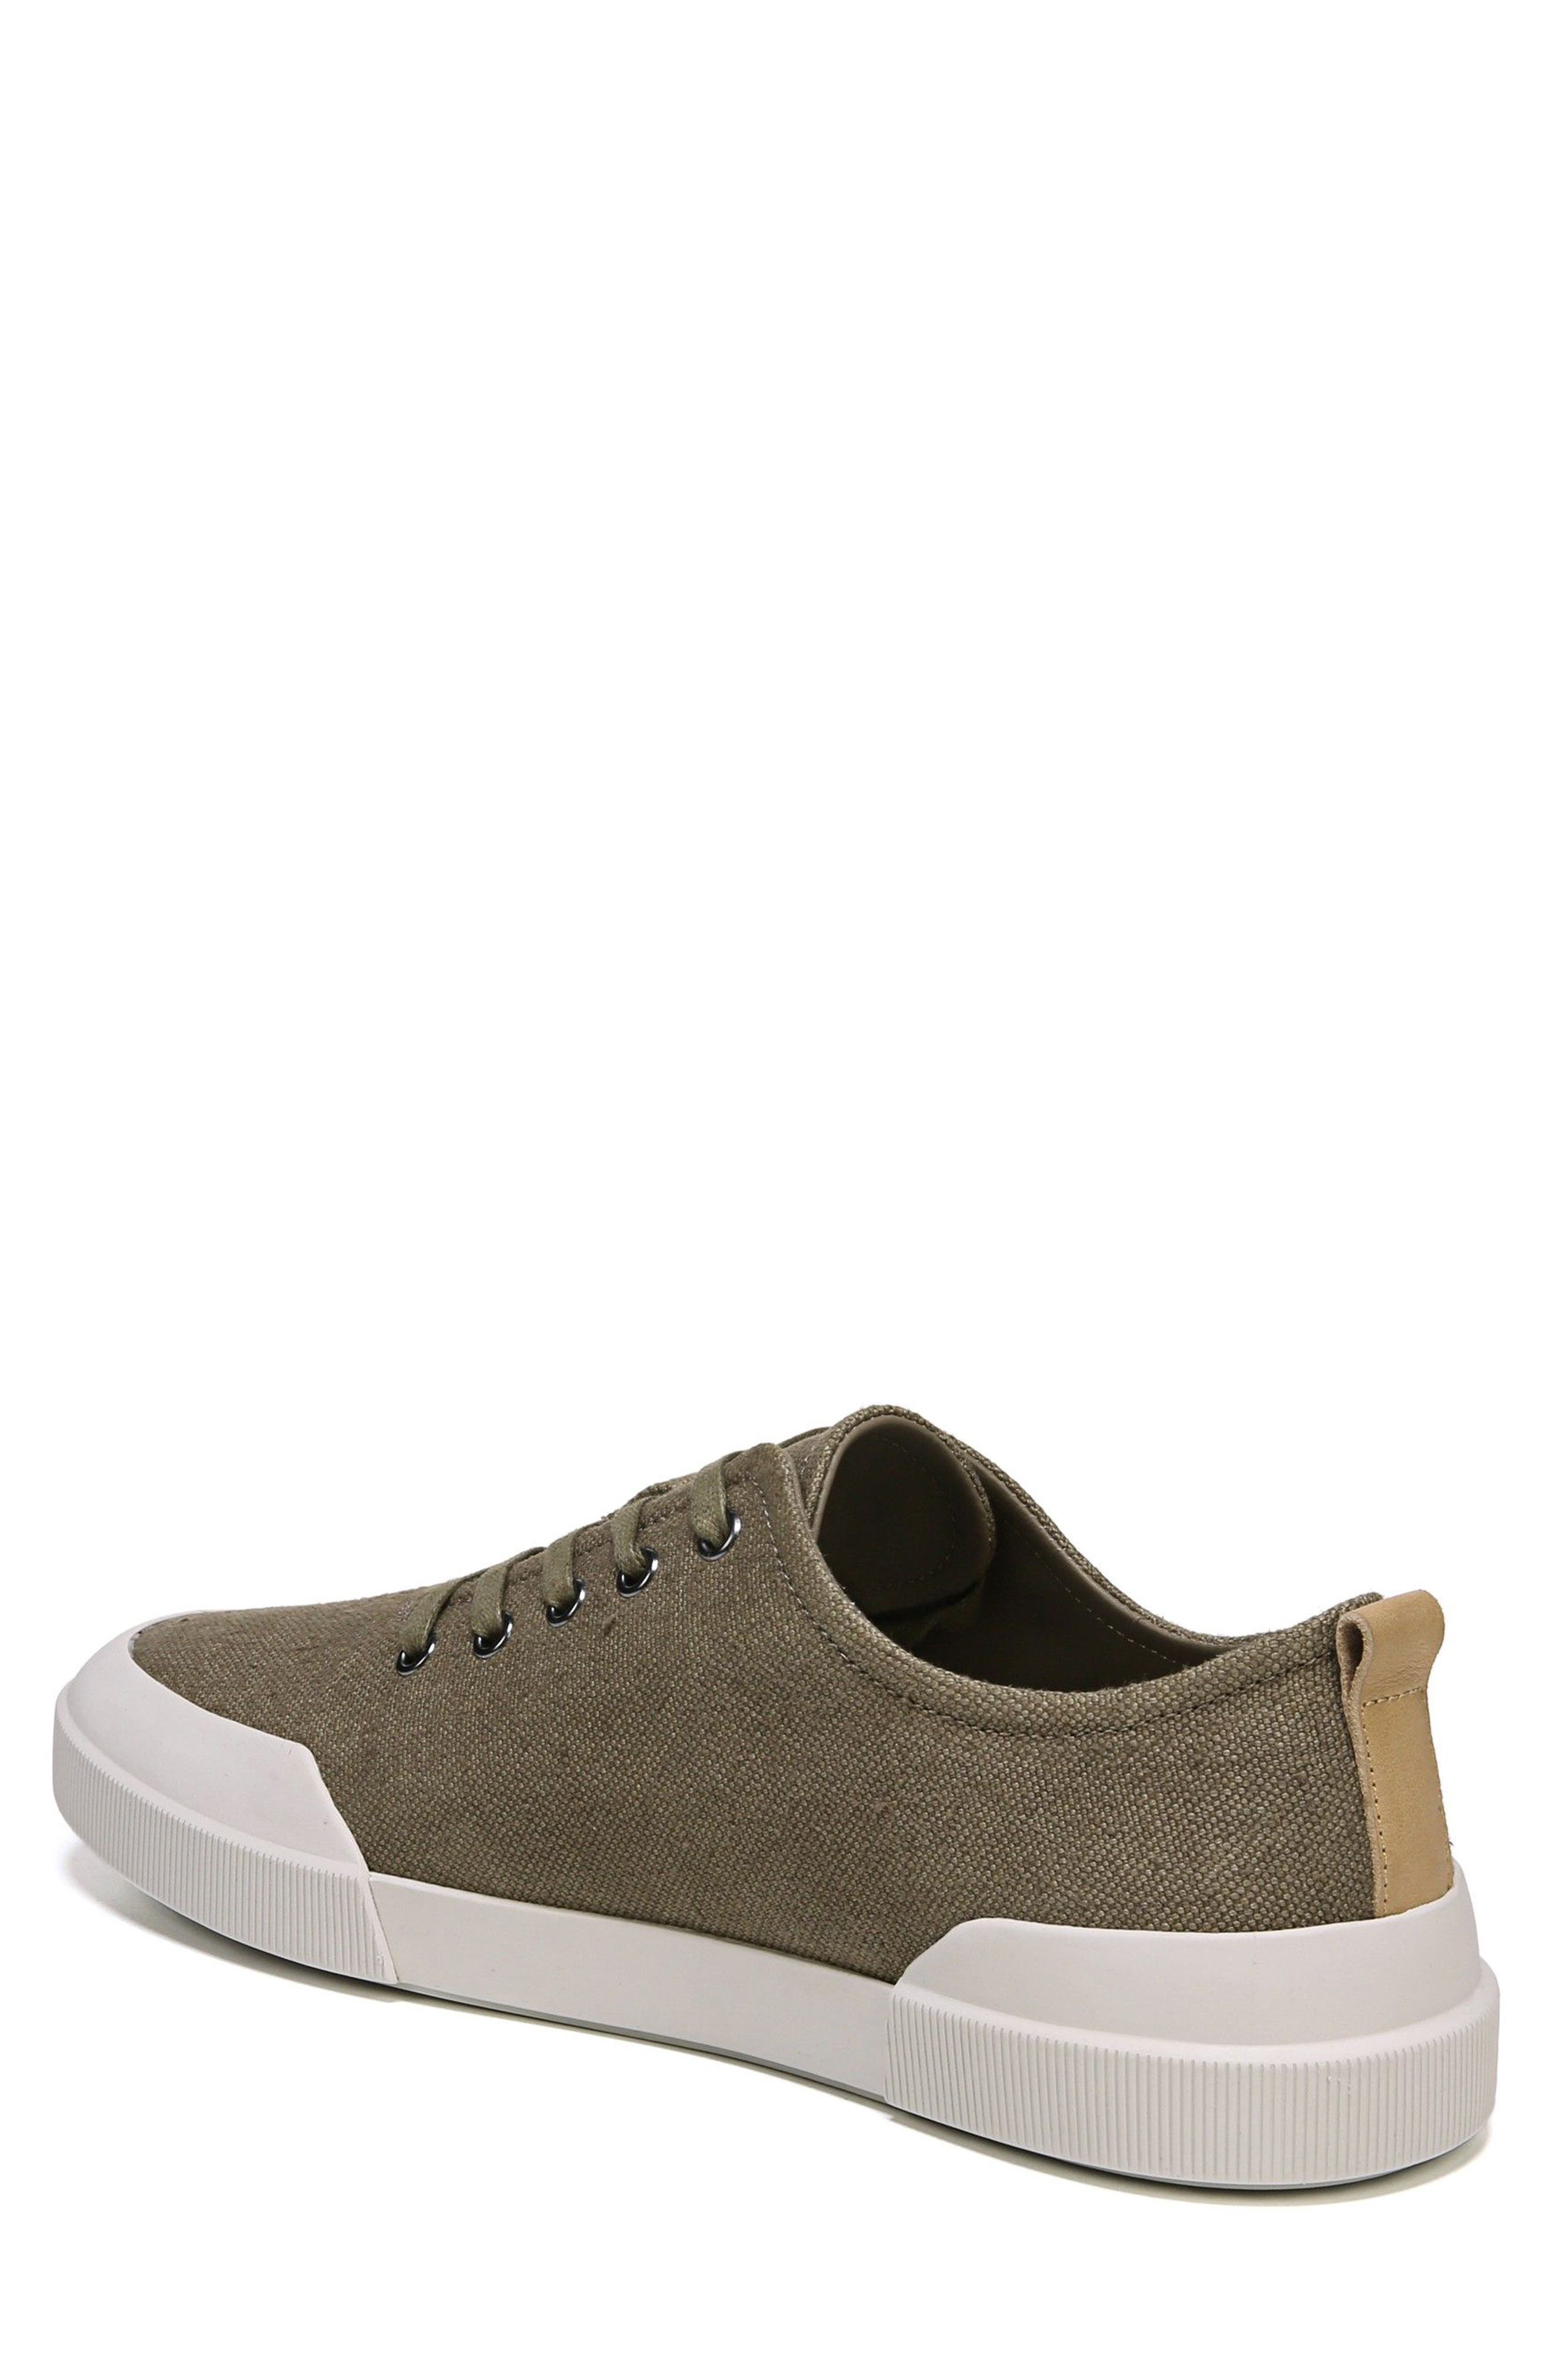 Victor Low Top Sneaker,                             Alternate thumbnail 2, color,                             Flint/ Cuoio